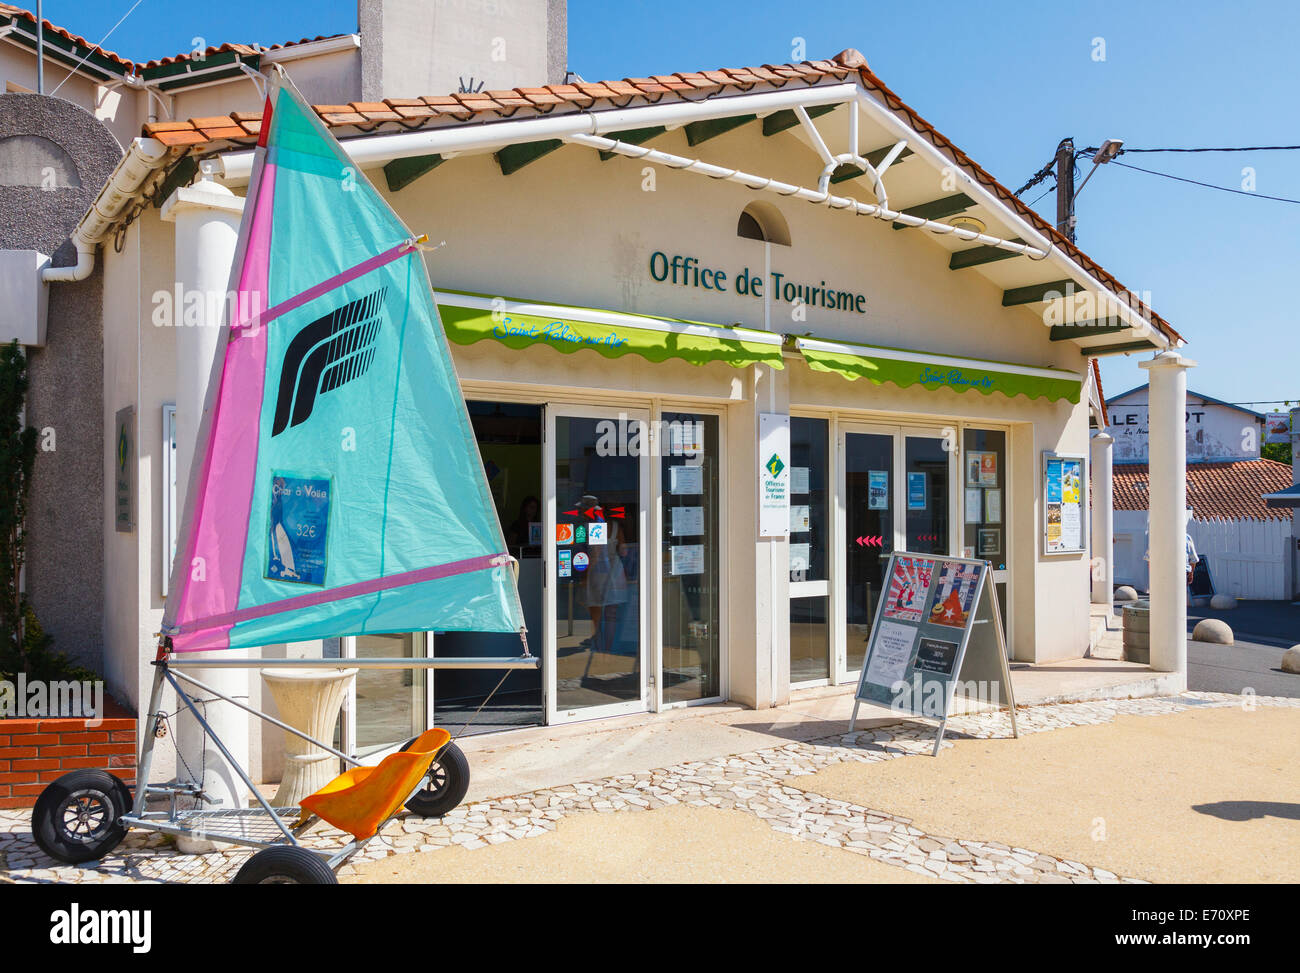 Office de tourisme stock photos office de tourisme stock images alamy - Office de tourisme saint palais sur mer ...